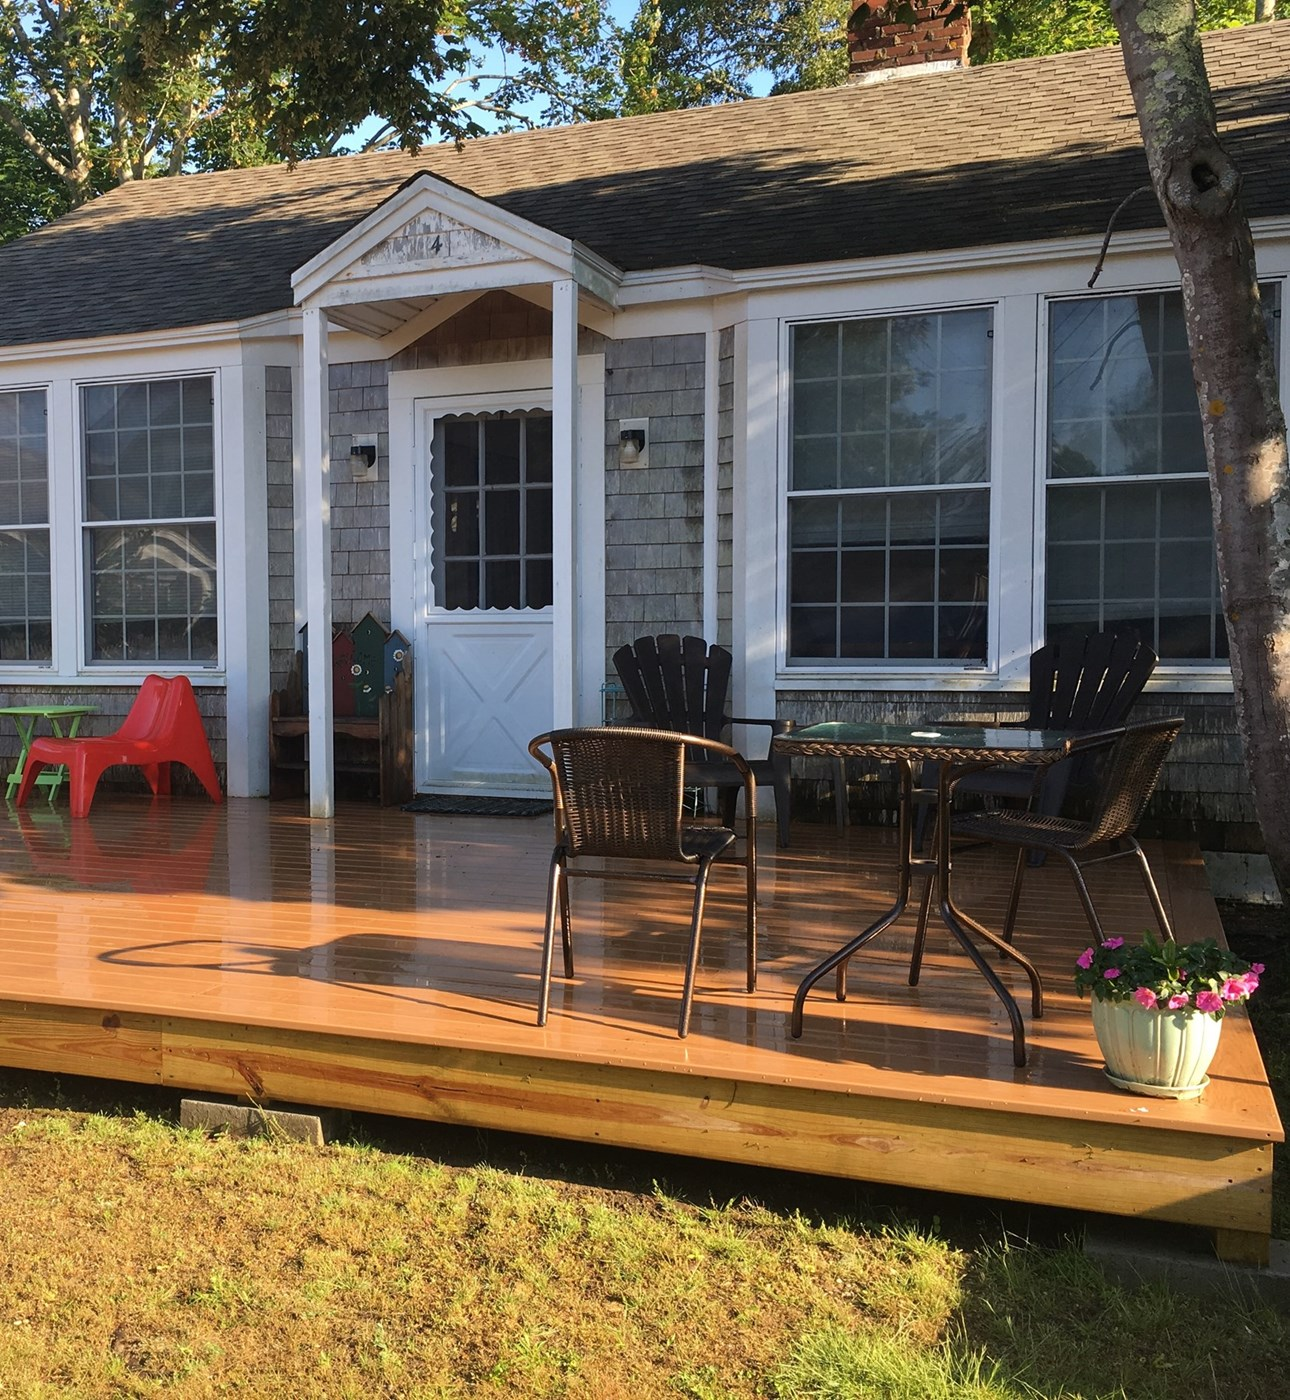 Harwich Vacation Rental Home In Cape Cod MA 02646, 2/10